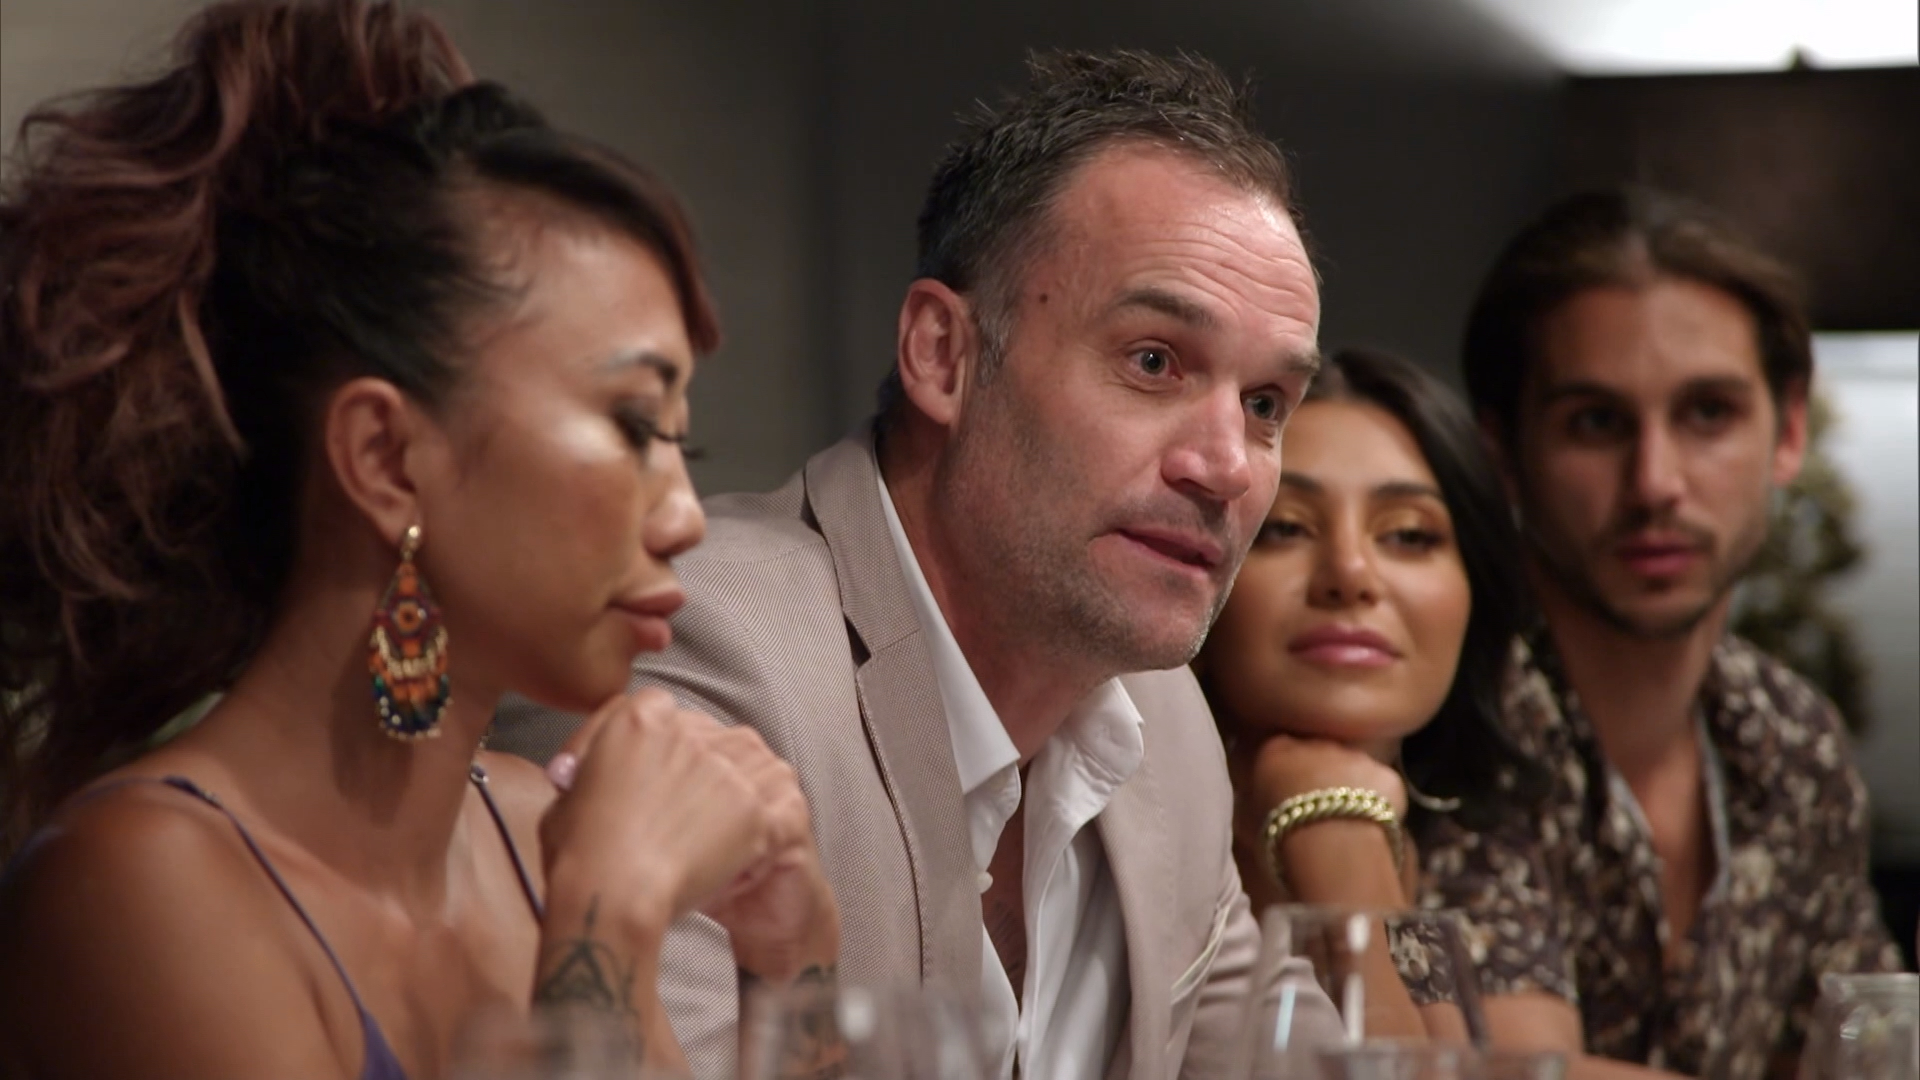 Episode 32 Recap: Mike's brutal take down rocks the Dinner Party